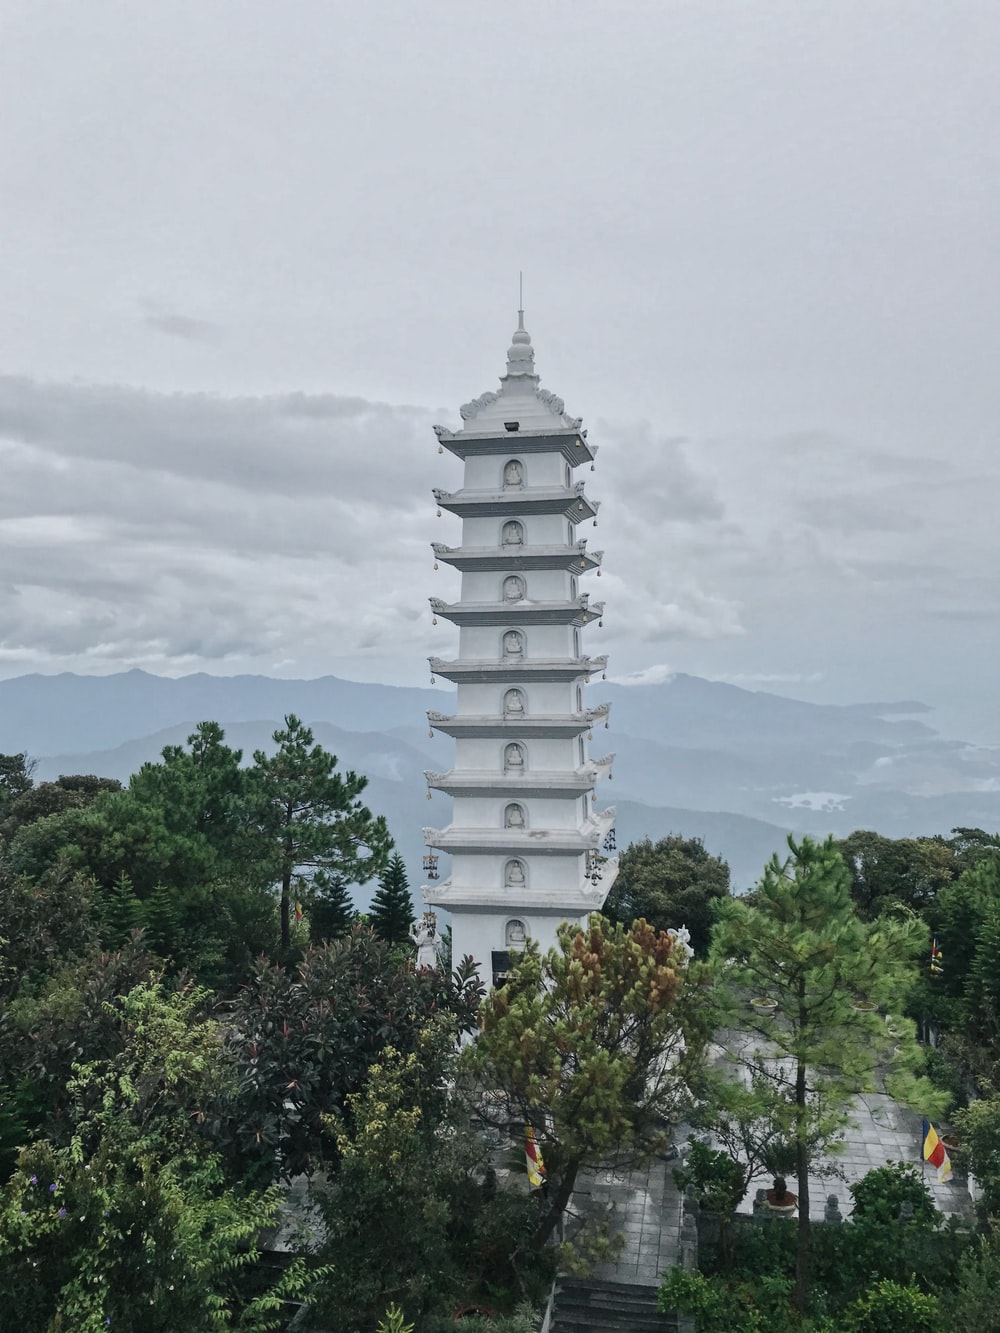 white concrete tower surrounded by green trees under white clouds during daytime